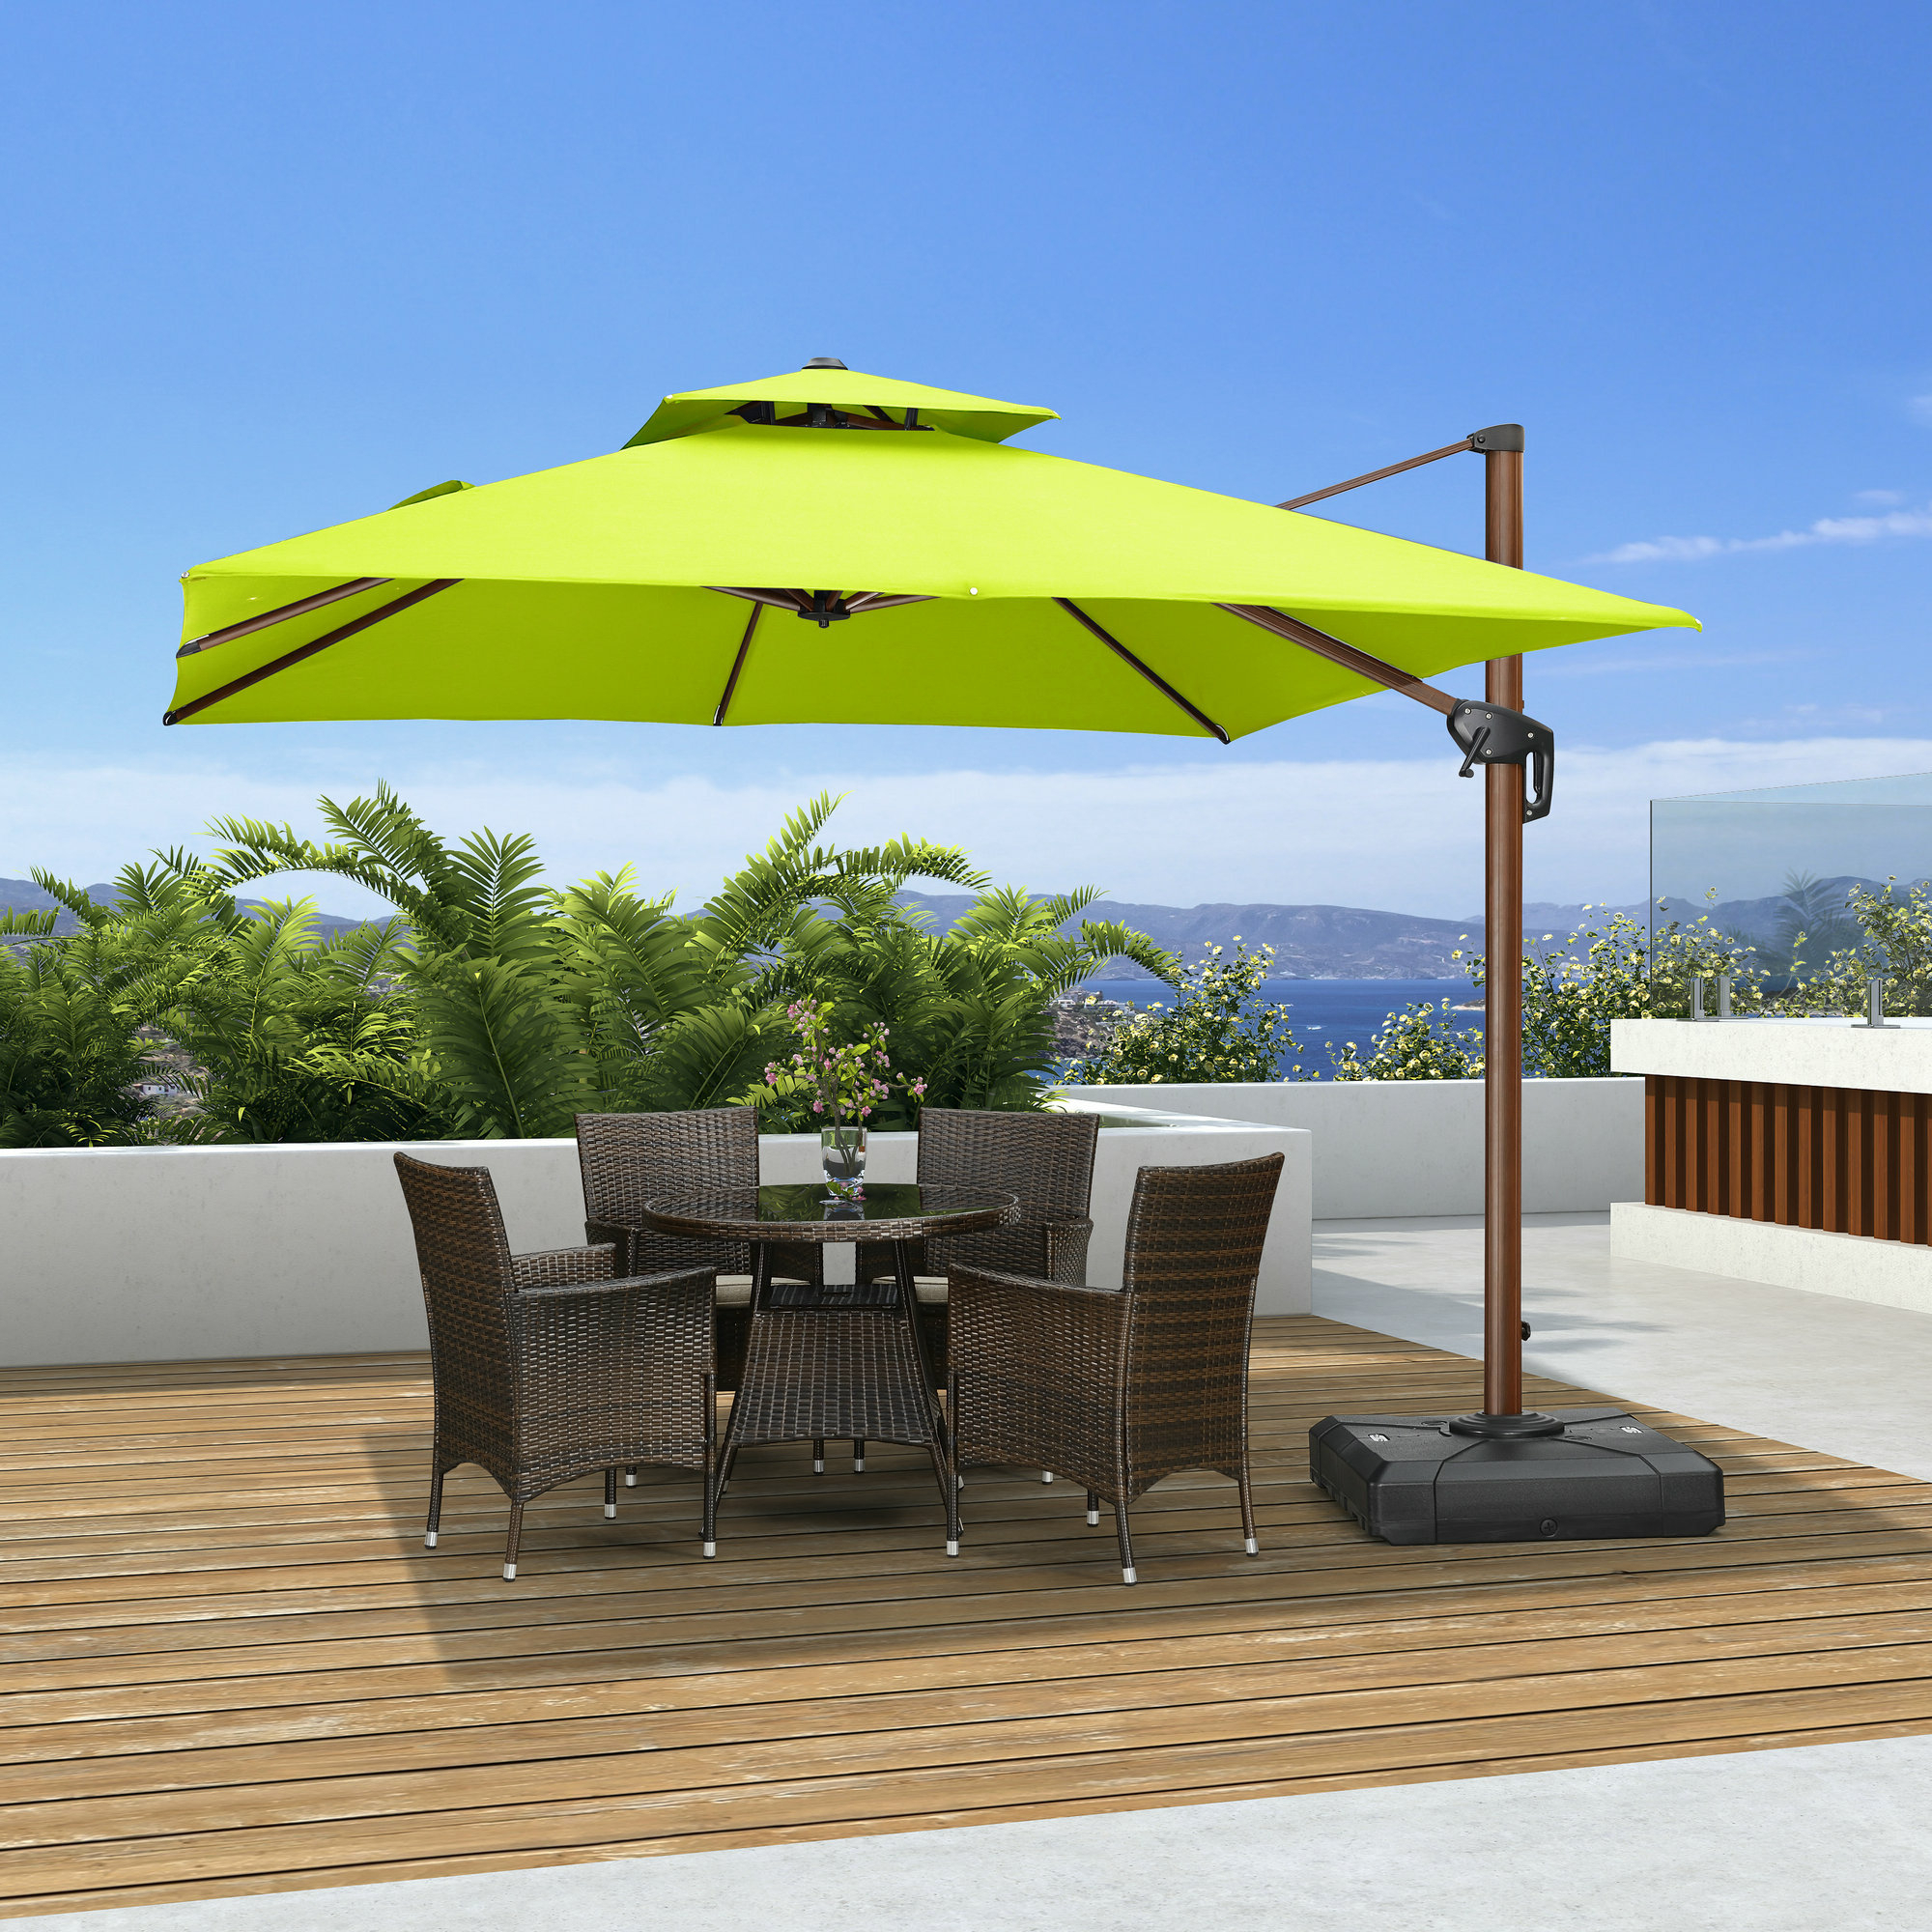 Windell Square Cantilever Umbrellas Within Fashionable Waddell 10' Square Cantilever Umbrella (View 20 of 20)